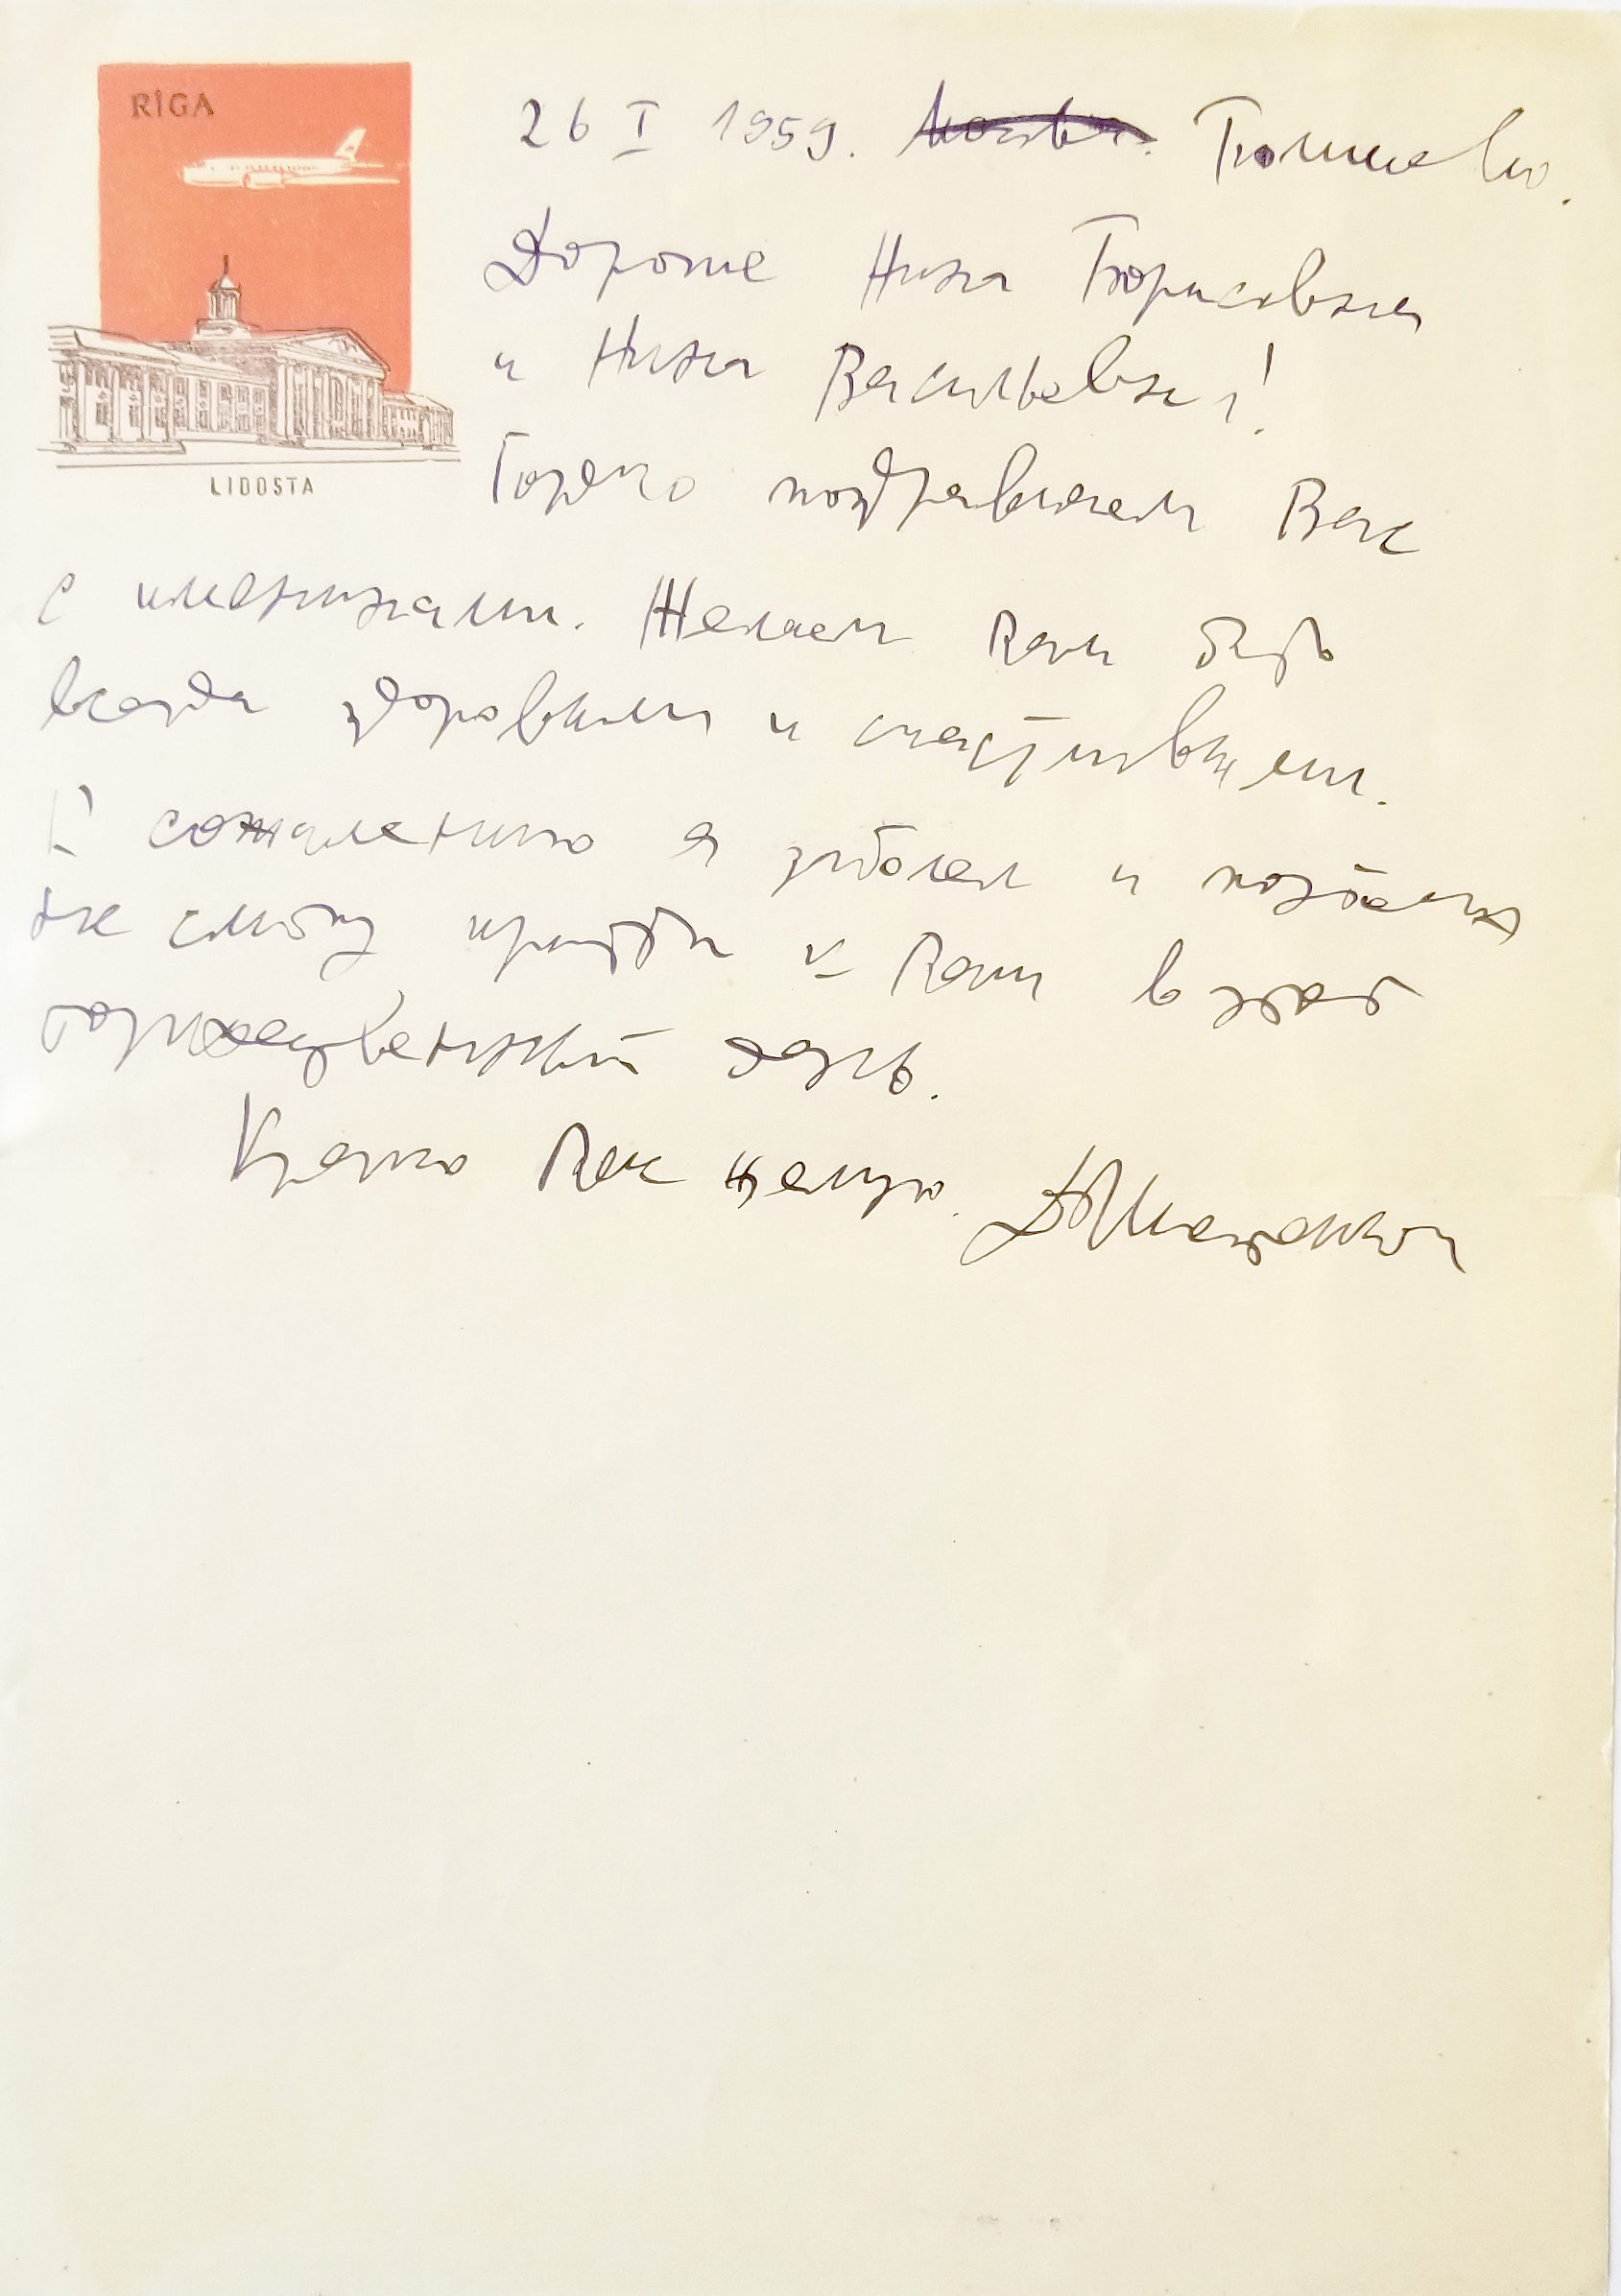 Very Fine and Uncommon Shostakovich Handwritten Letter Mentioning Poor Health